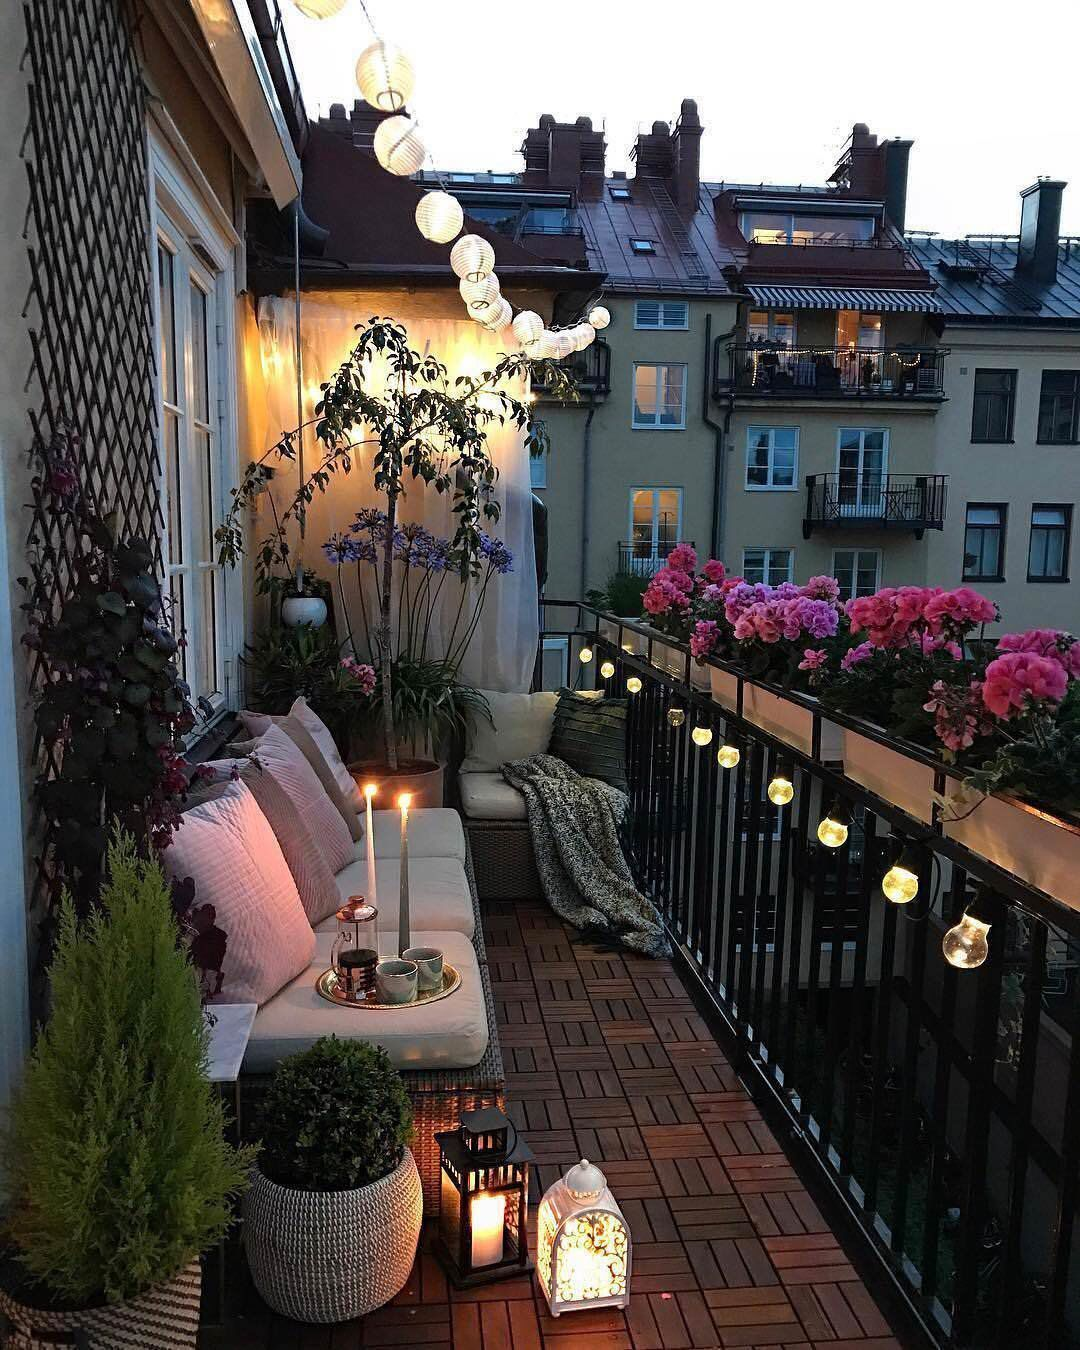 Get inspired with these exterior design ideas! #balcony